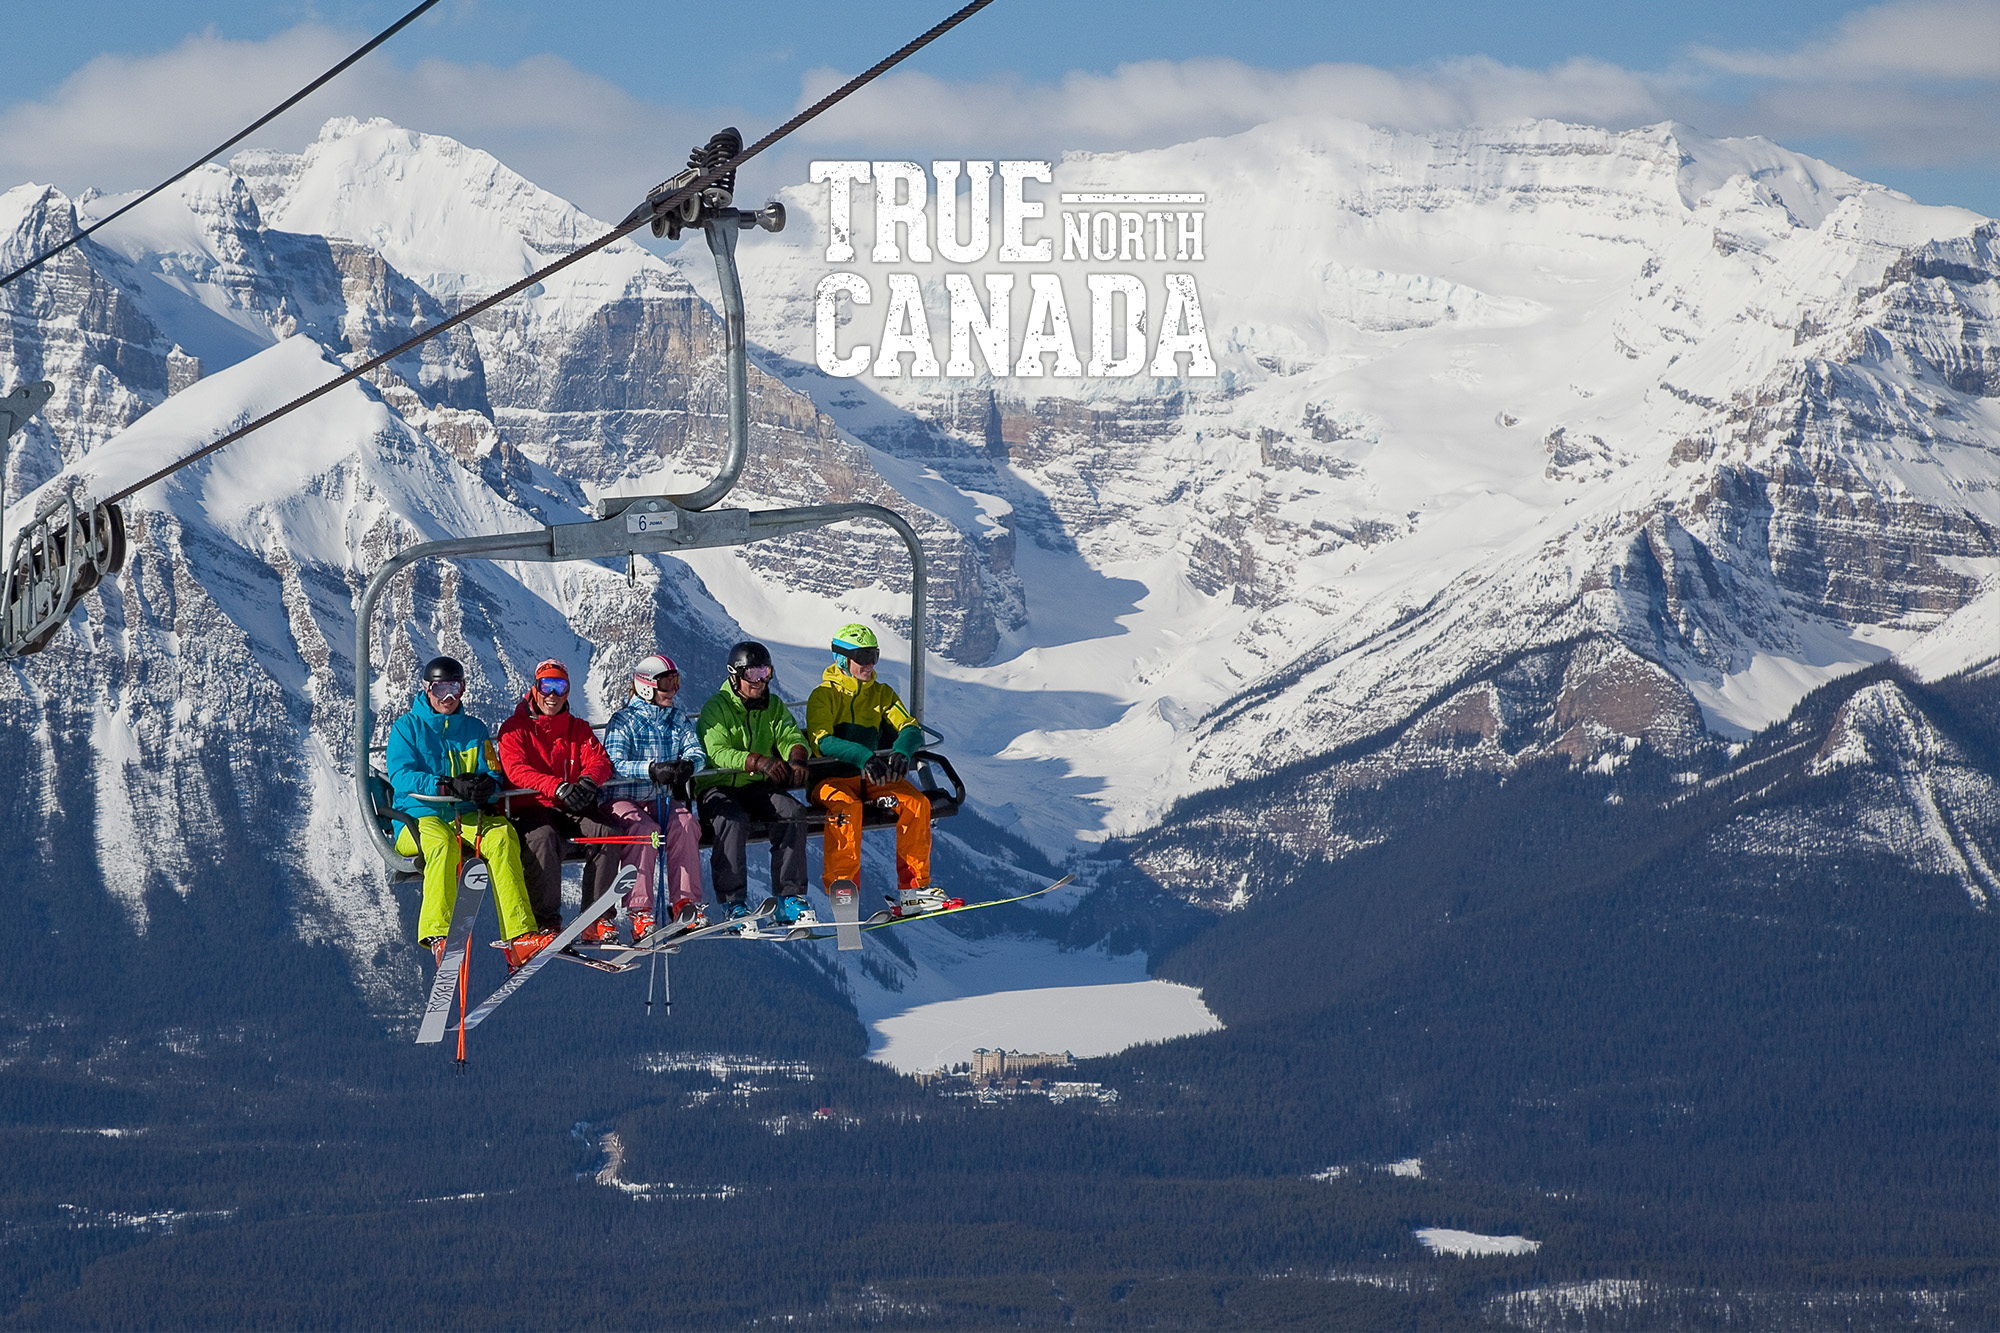 Chair lift at Lake Louise Gondola against snowy Rocky mountains